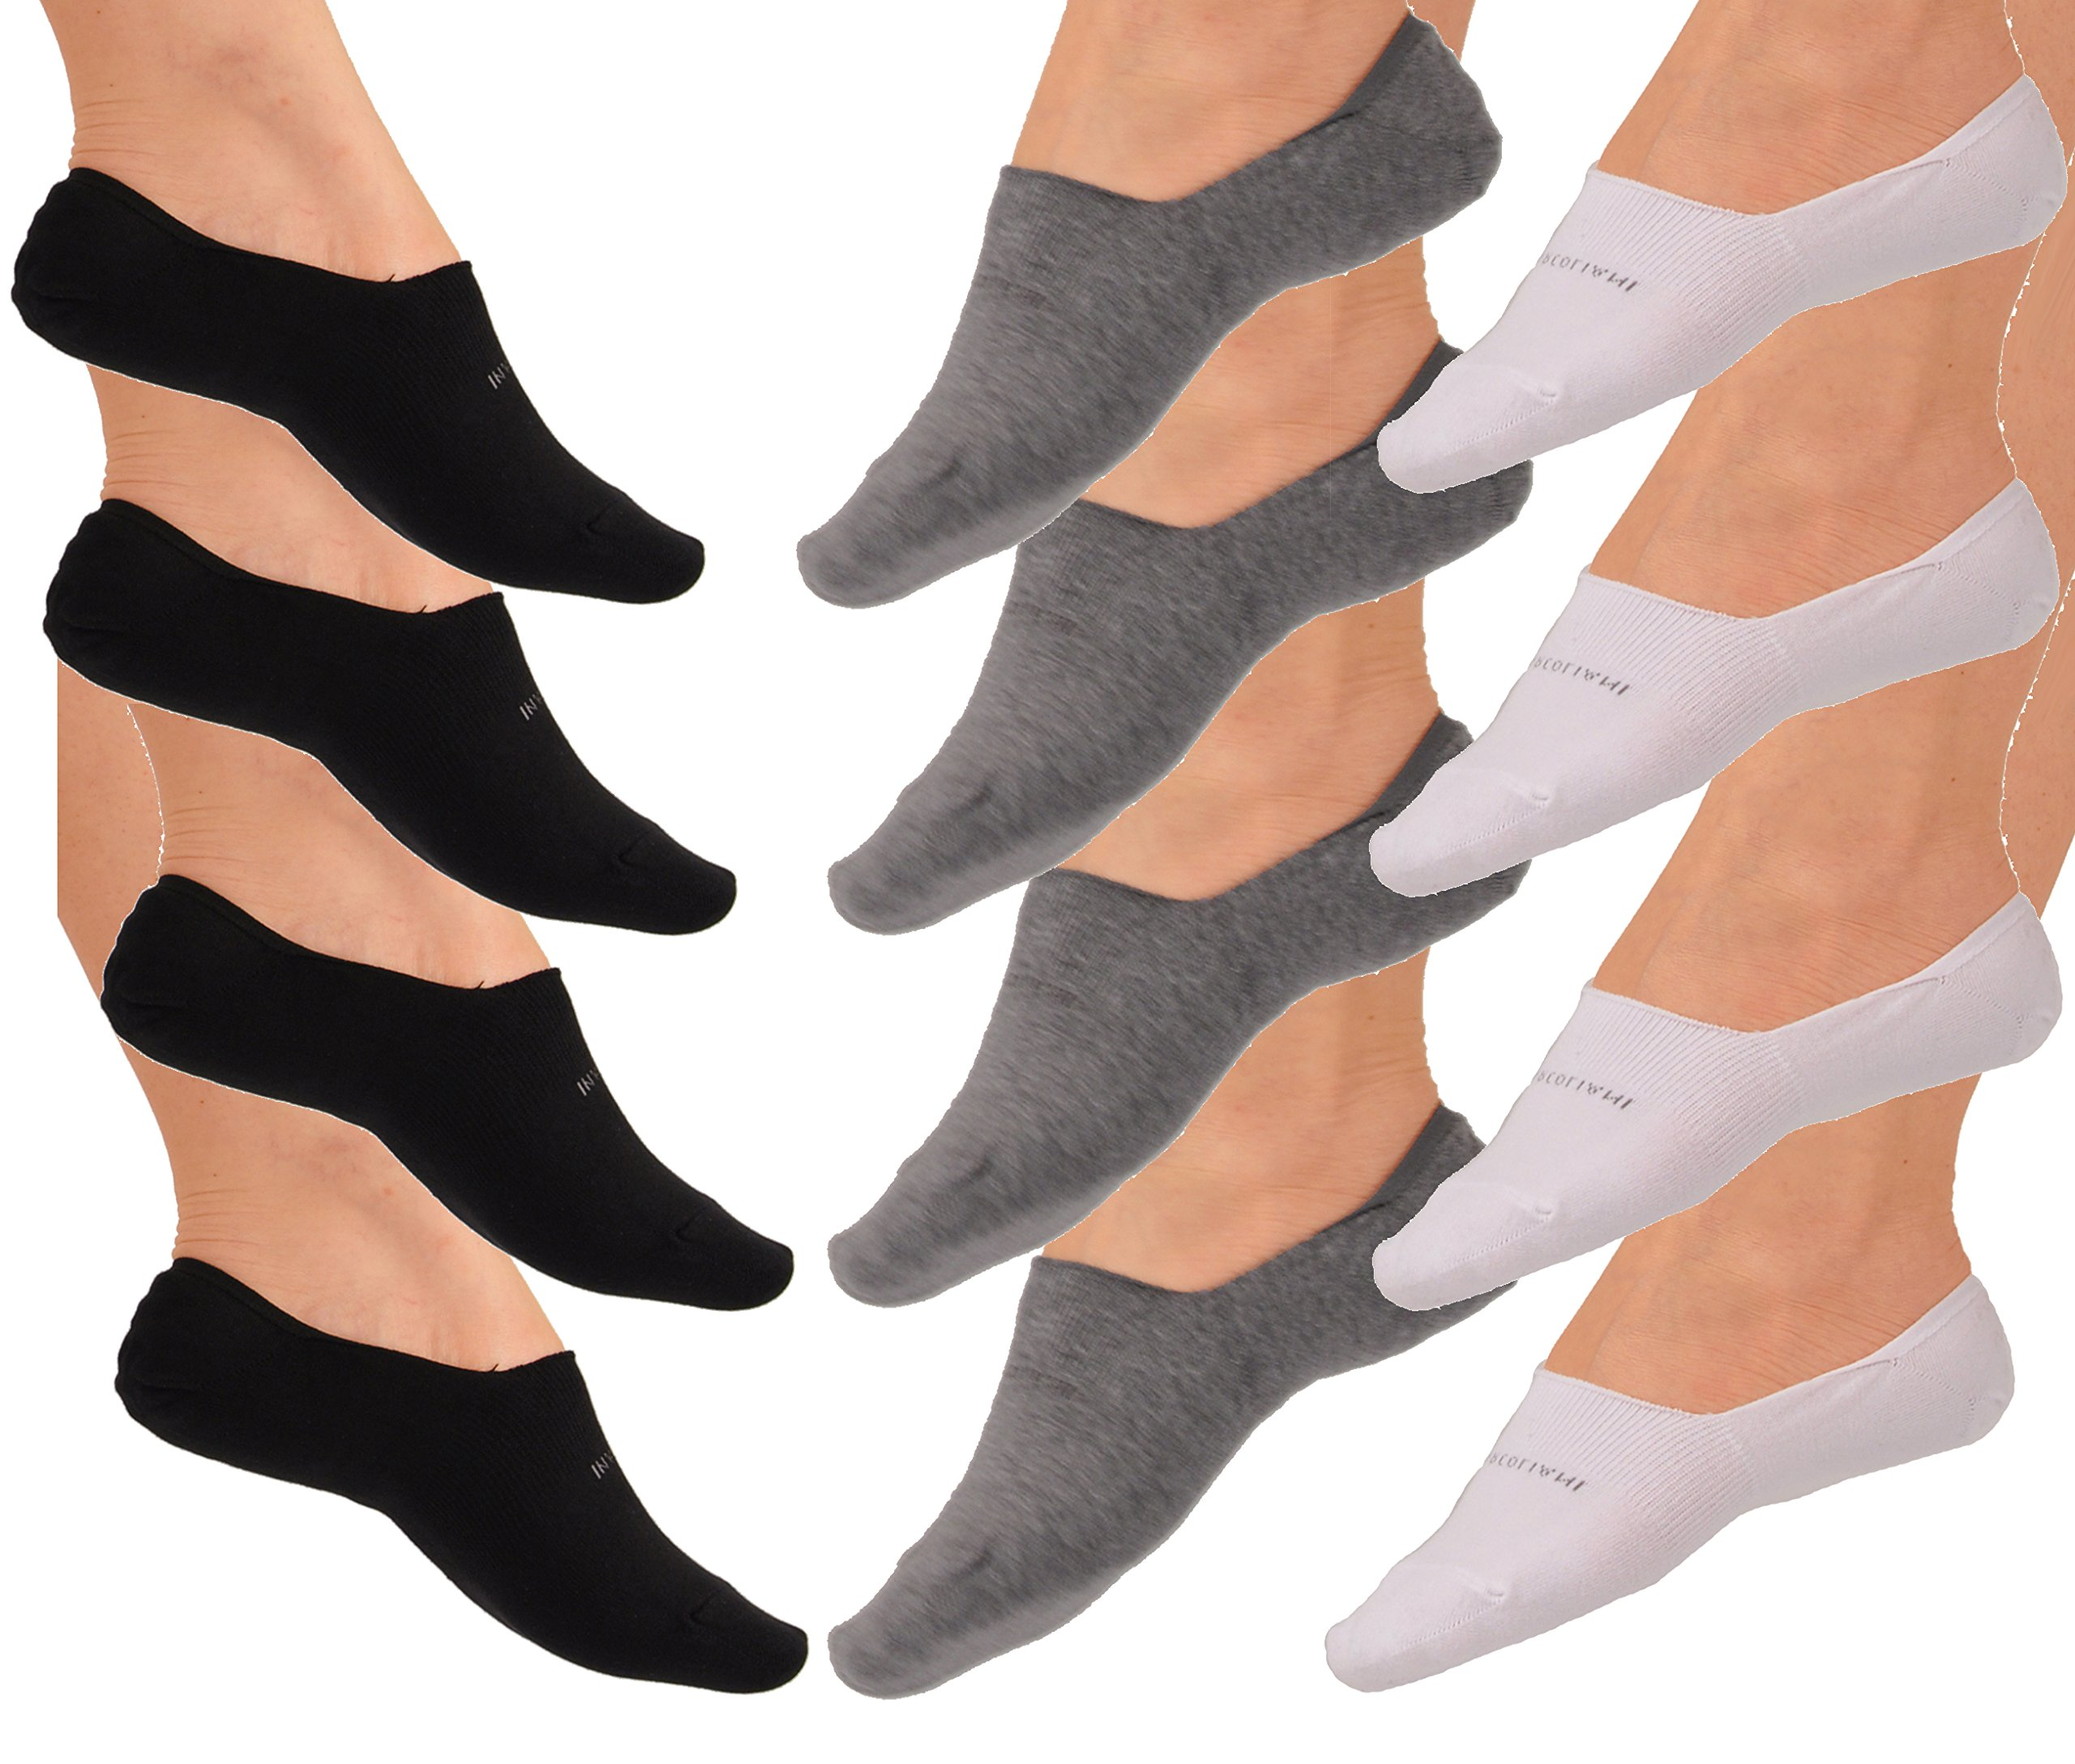 Twelve Pairs No Show Luxury Pima Cotton Italian Loafer Socks - 4 Pairs Each Black, White, and Flannel